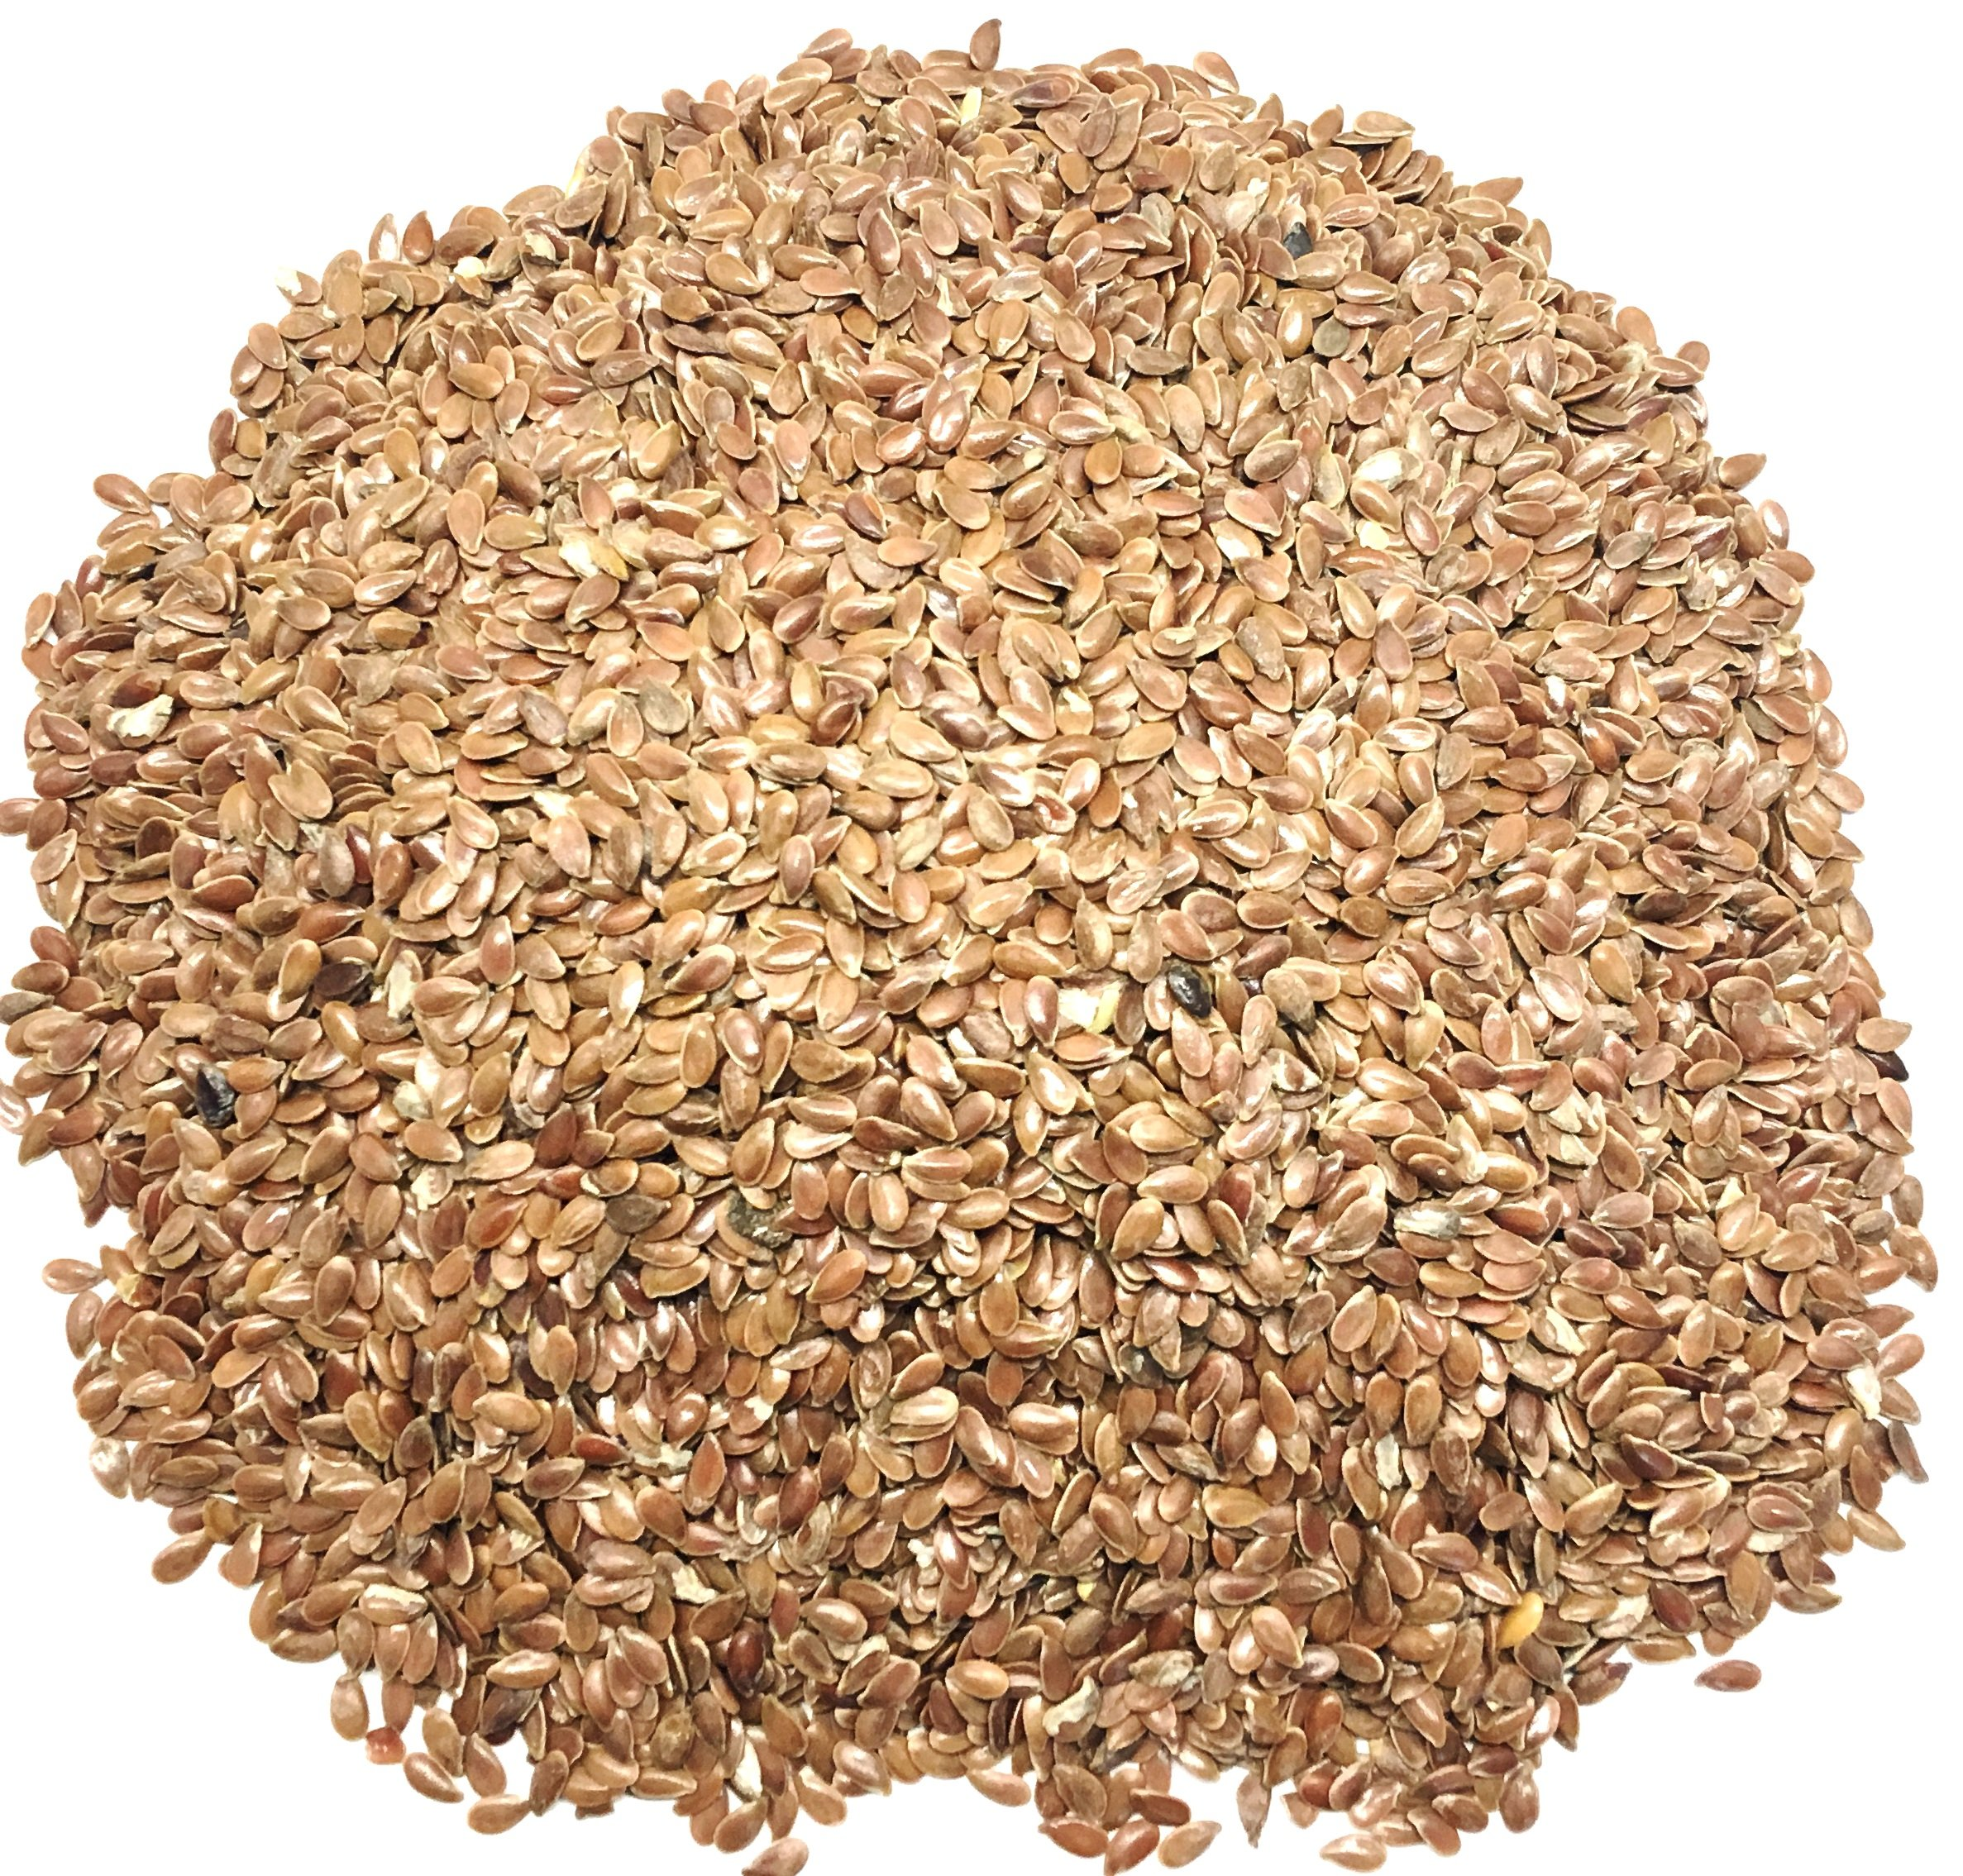 Flax seeds Linaza Semilla - Value Pack (300g) seeds 100% Natural